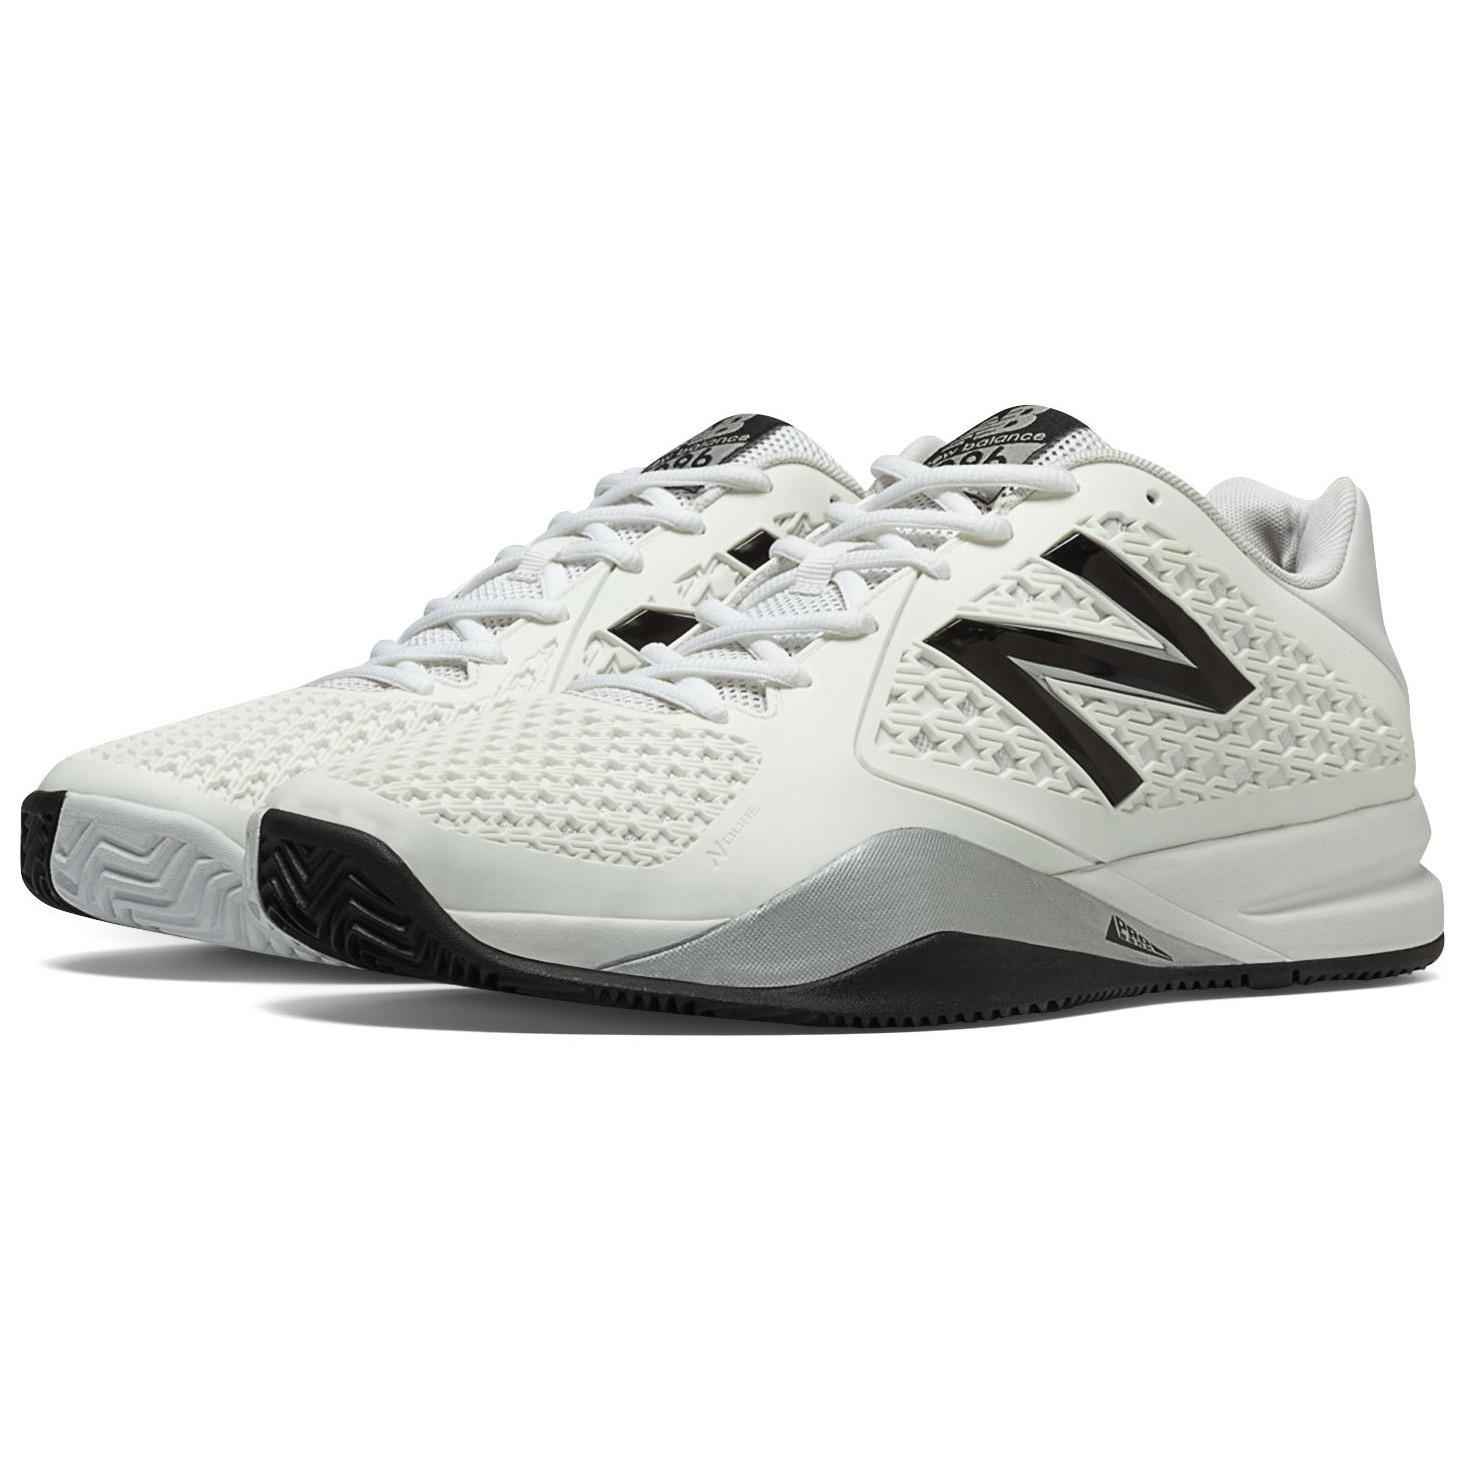 4kcf89y9 cheap new balance s white tennis shoes